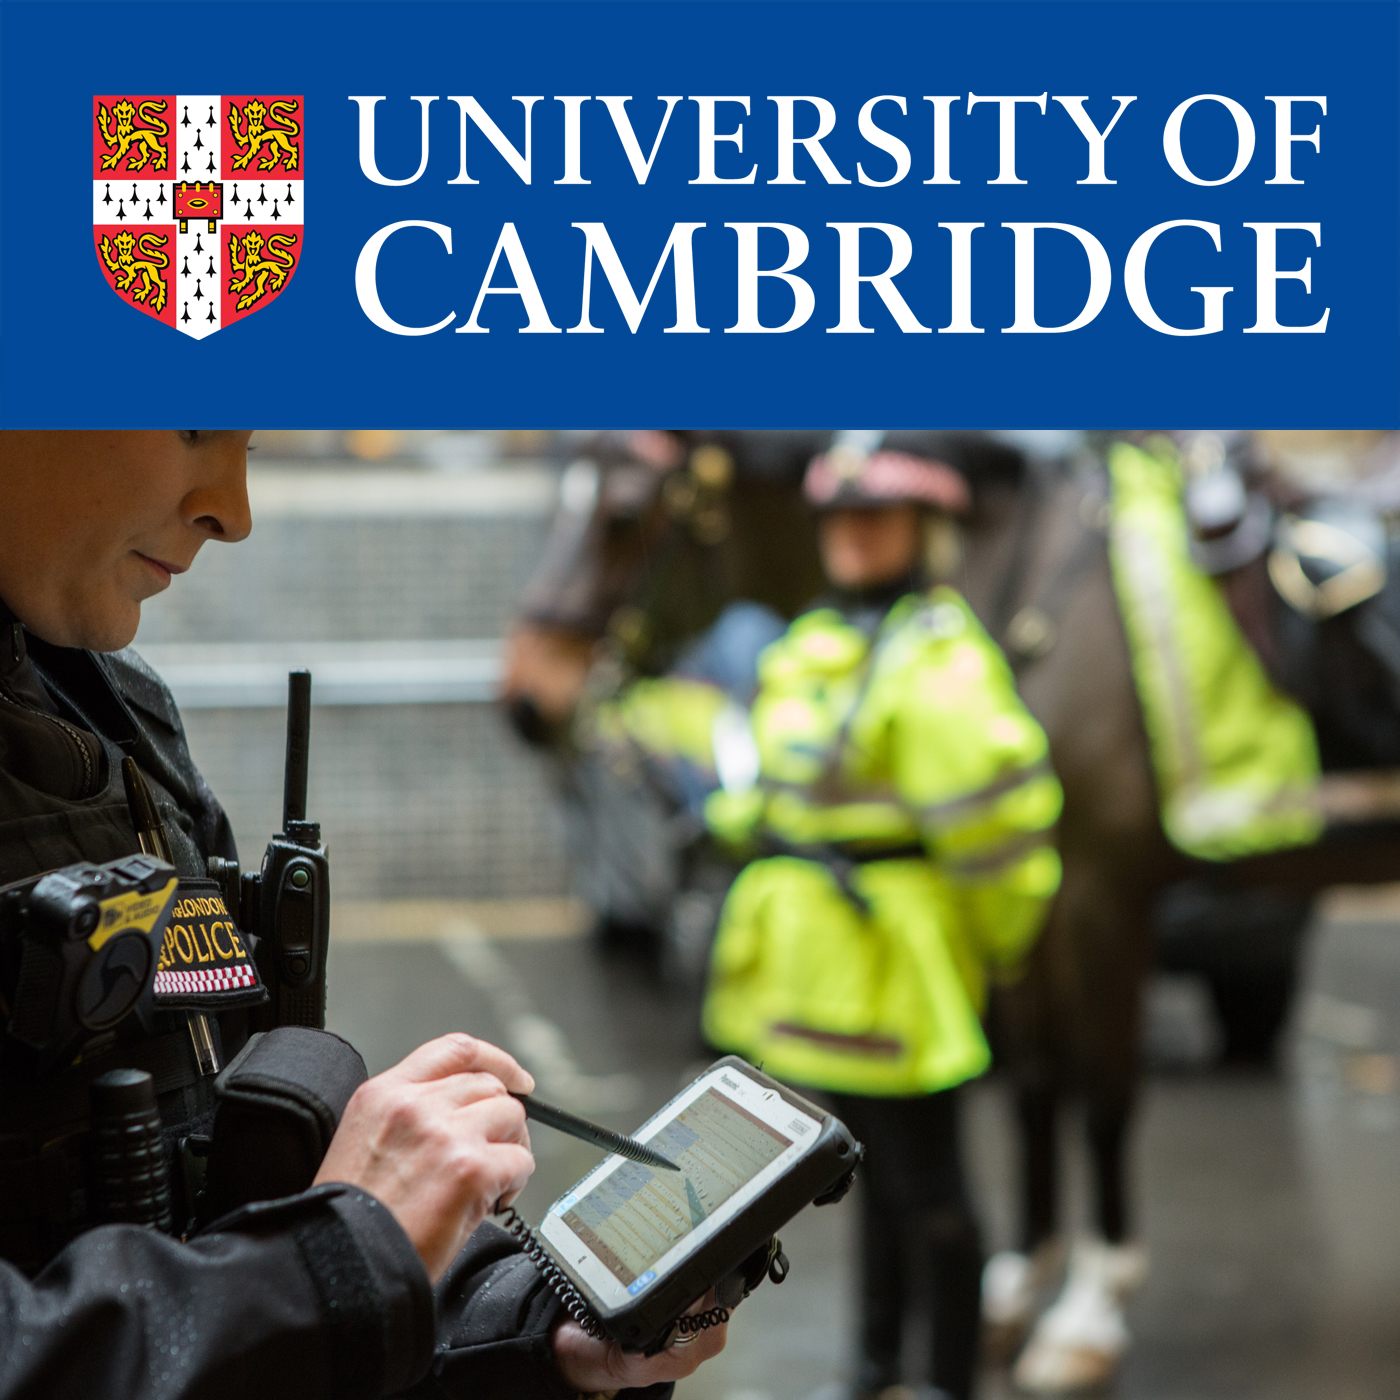 Criminology: 11th Evidence Based Policing Conference's image